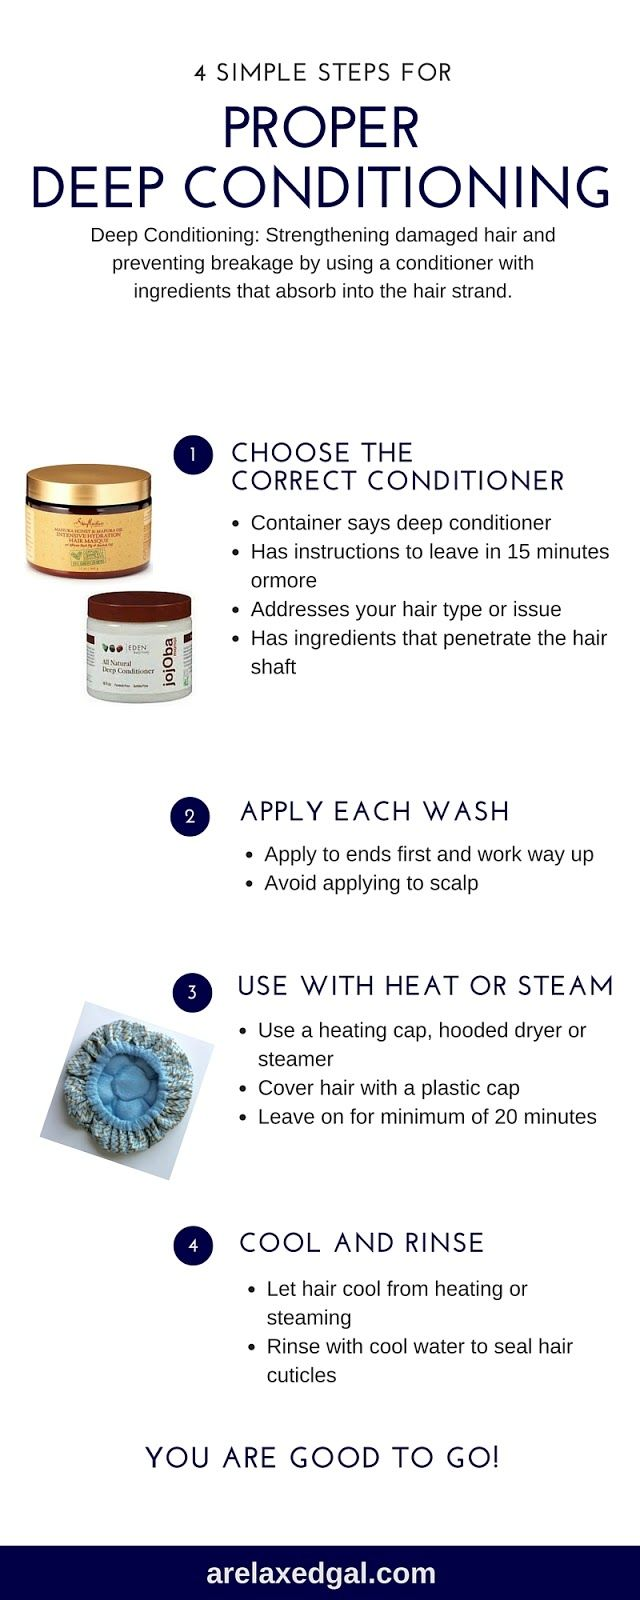 4 Simple Steps for Proper Deep Conditioning Infographic | arelaxedgal.com #relaxedhair #healthyhair #hairtip